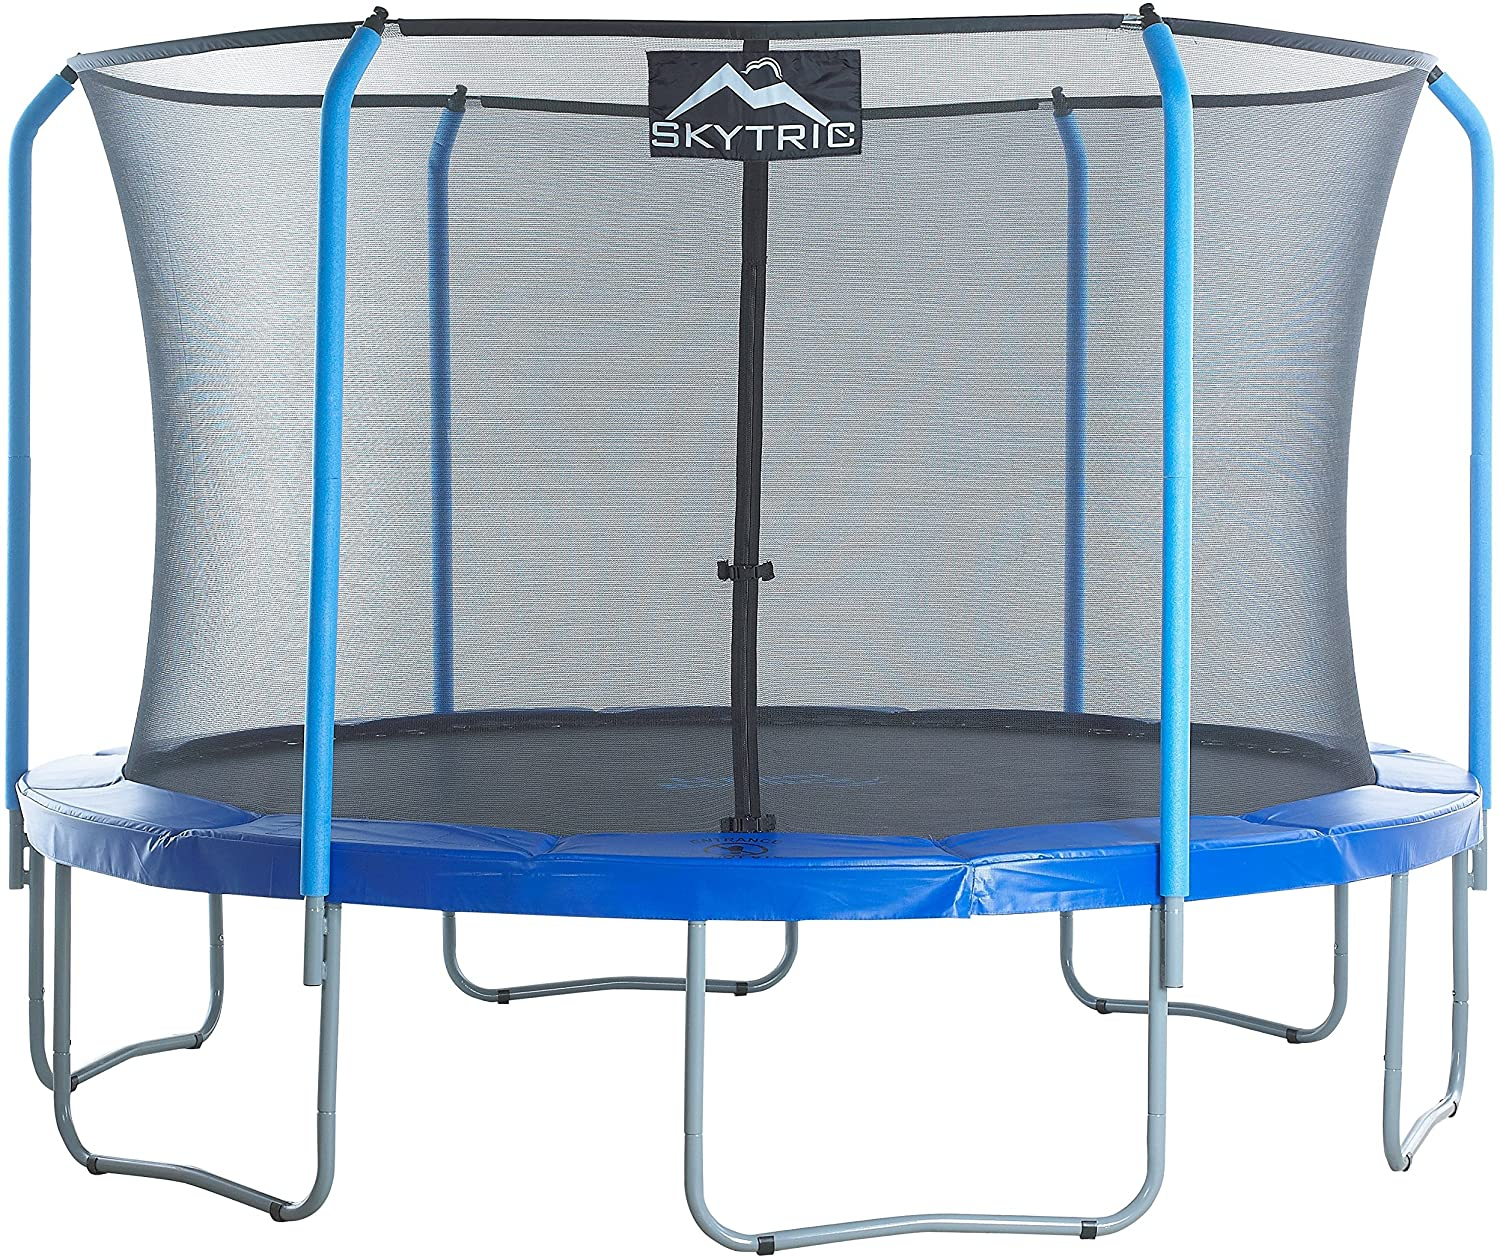 Skytric Large Trampoline with Top Ring Enclosure System